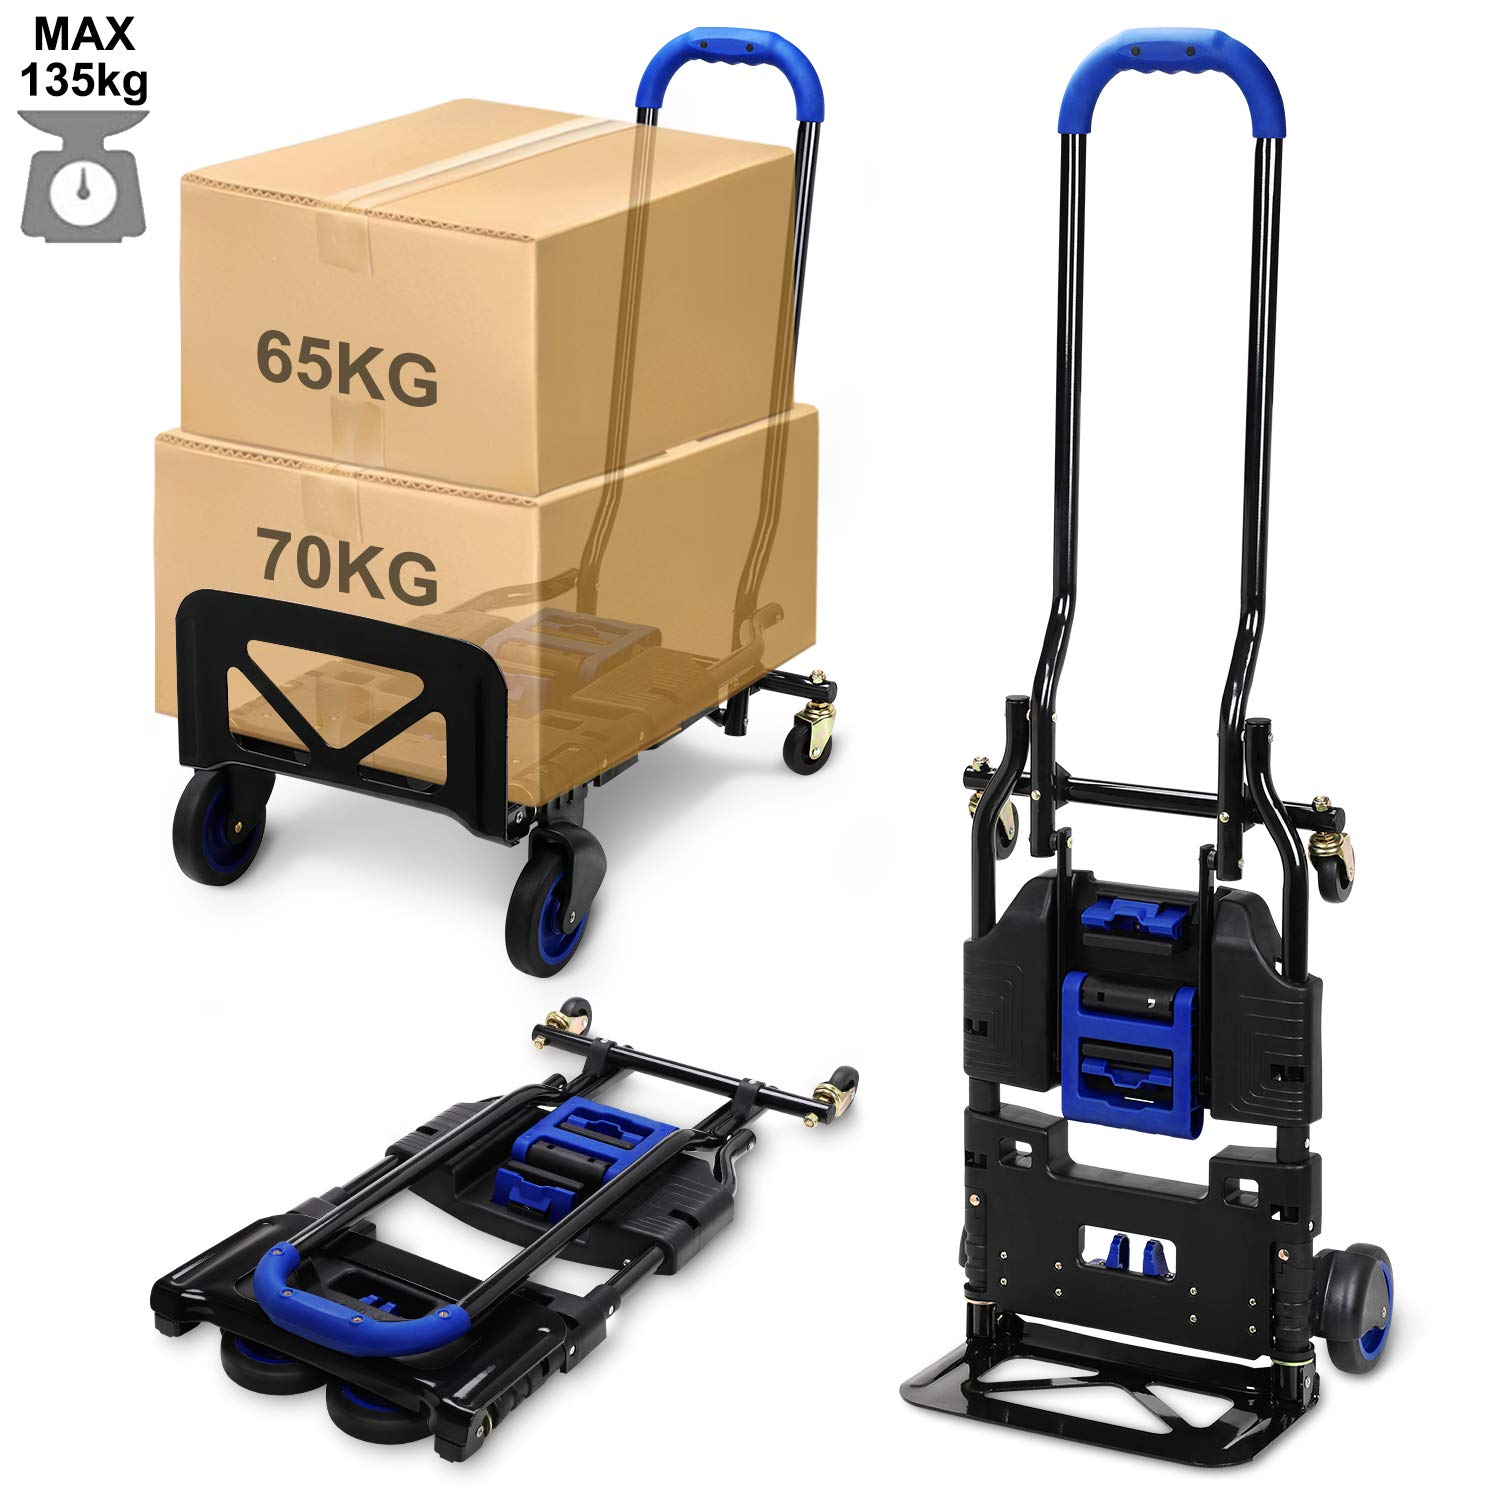 360/° 4-Wheel Popolic Folding Hand Truck Super Load 135kg//300lb Multi Function Handcart /& Sack Cart Trolley 2IN1 Heavy Duty Metal Industrial Sack Truck Dolly for Indoor Outdoor Travel Grocery